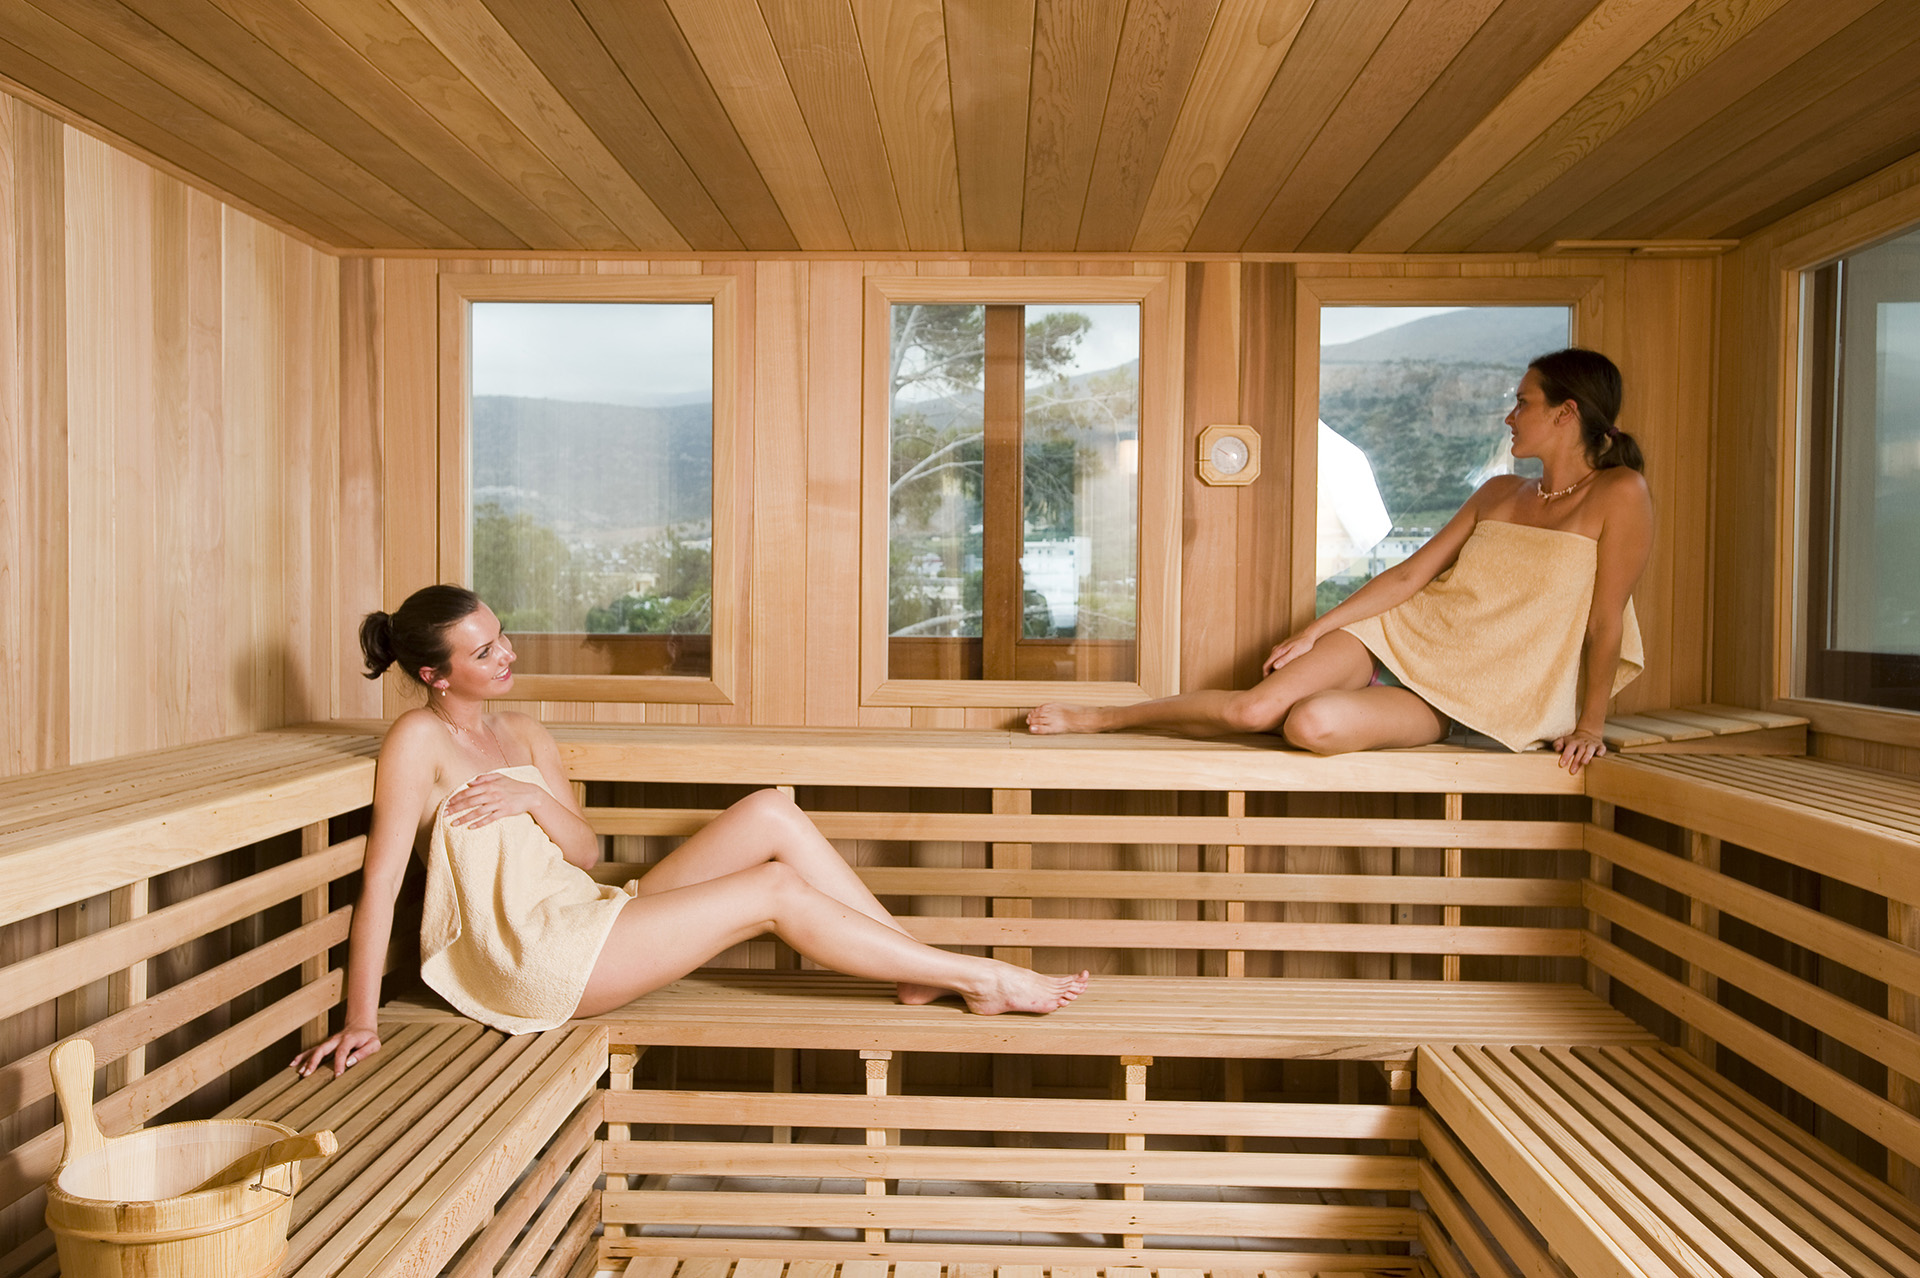 Rocky Mountain Pools and spas girls in outdoor-sauna nordic white spruce